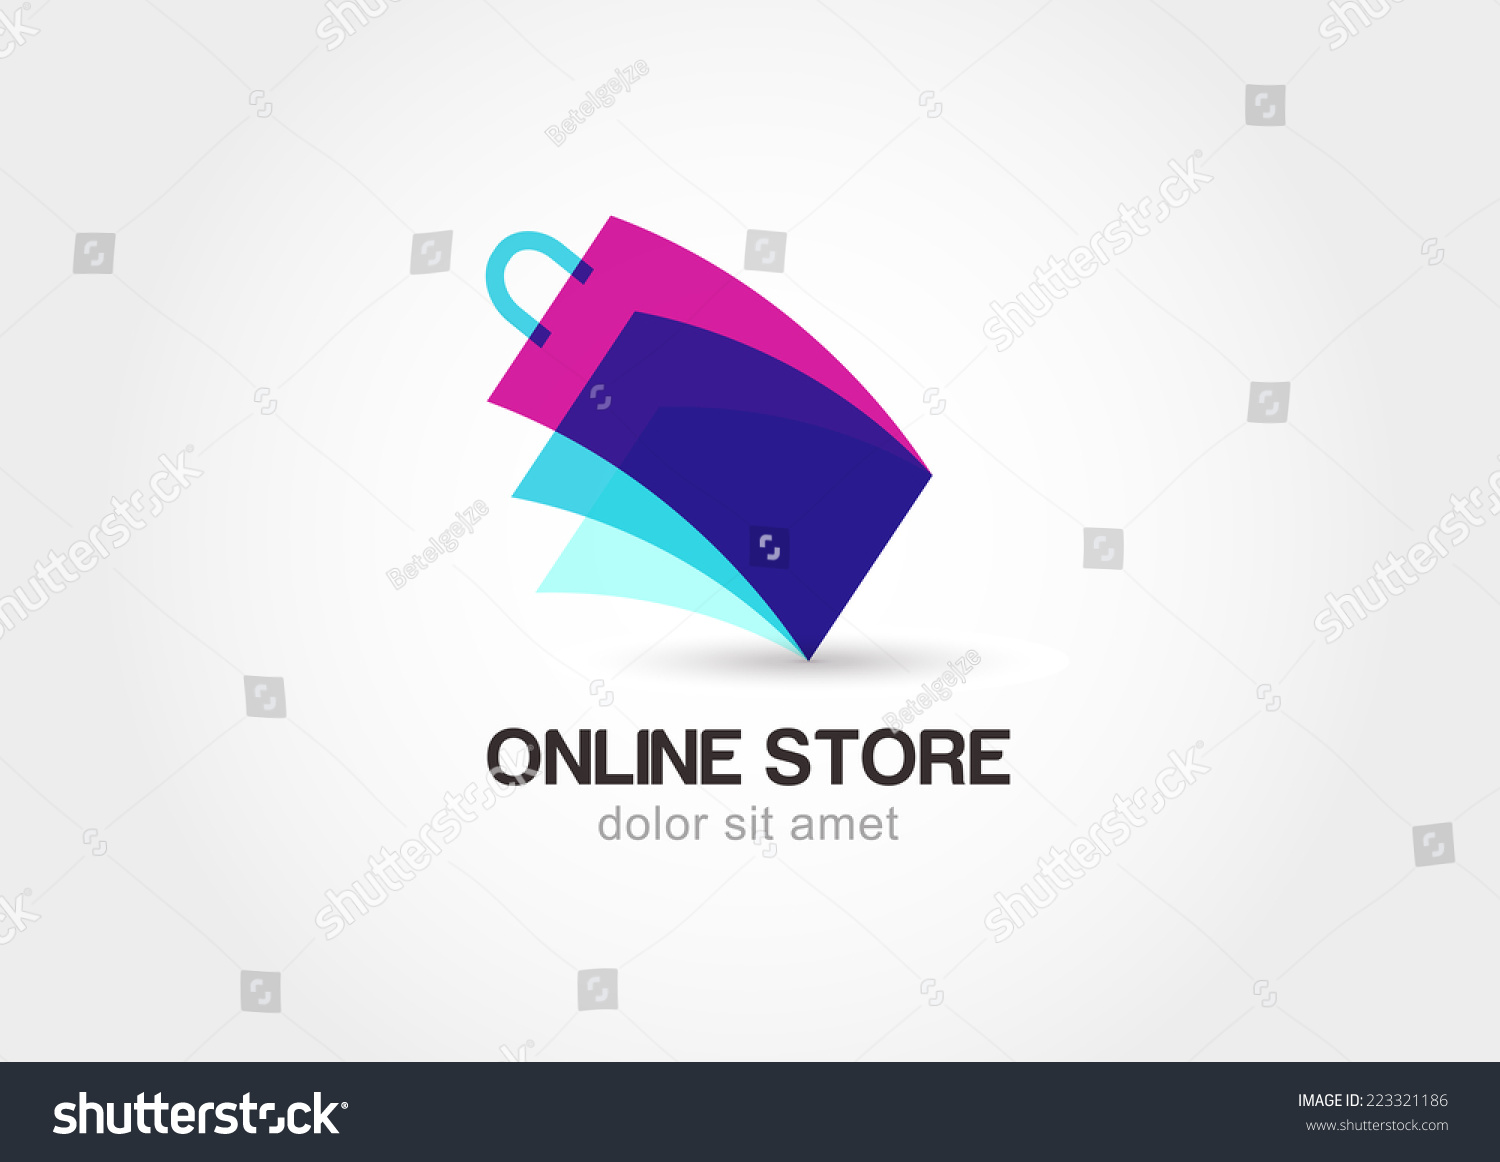 Abstract online